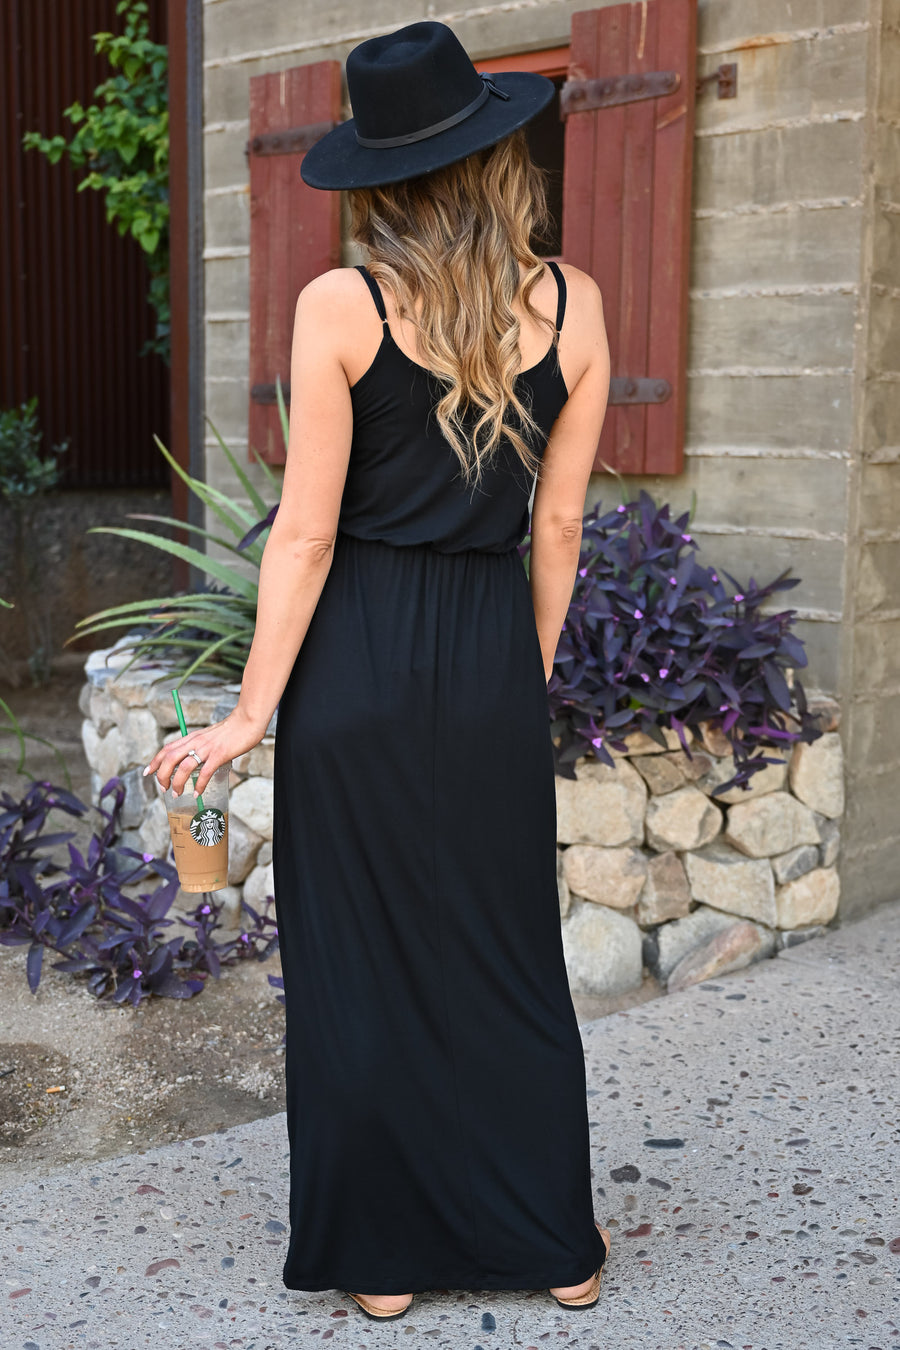 Beachside Classic Maxi - Black womens trendy spaghetti strap long dress closet candy front two